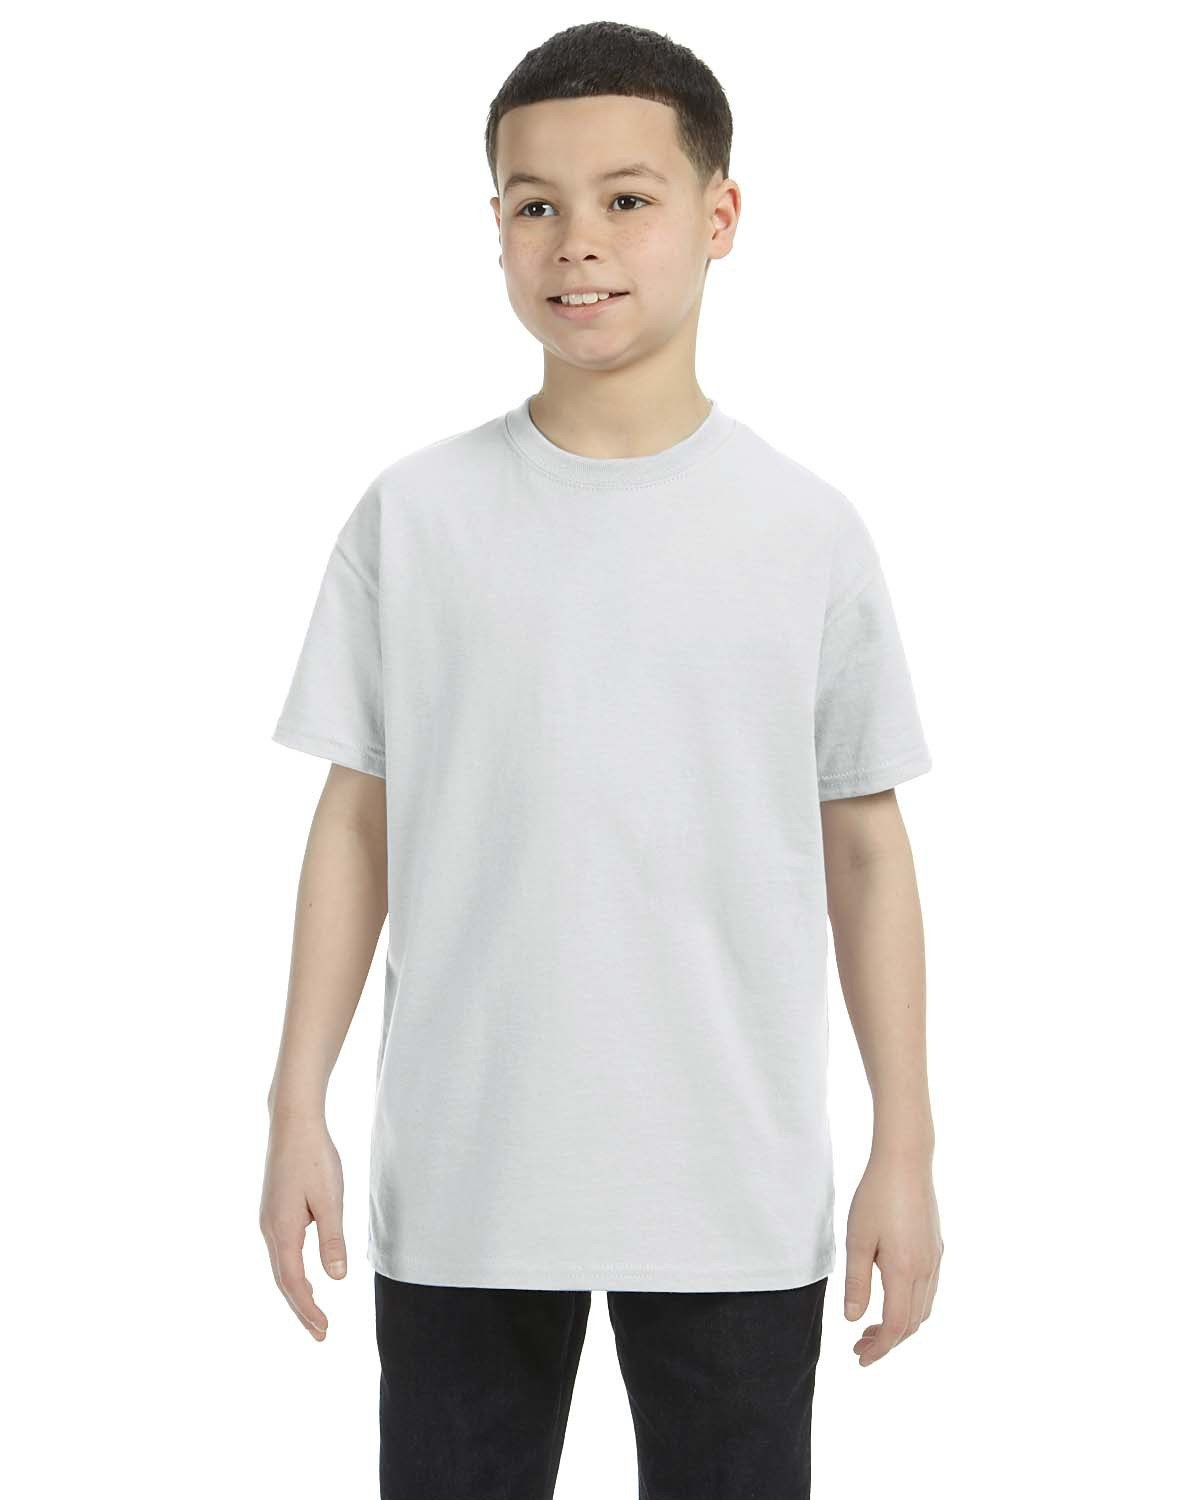 Gildan - G500B - Youth 5.3 oz. T-Shirt